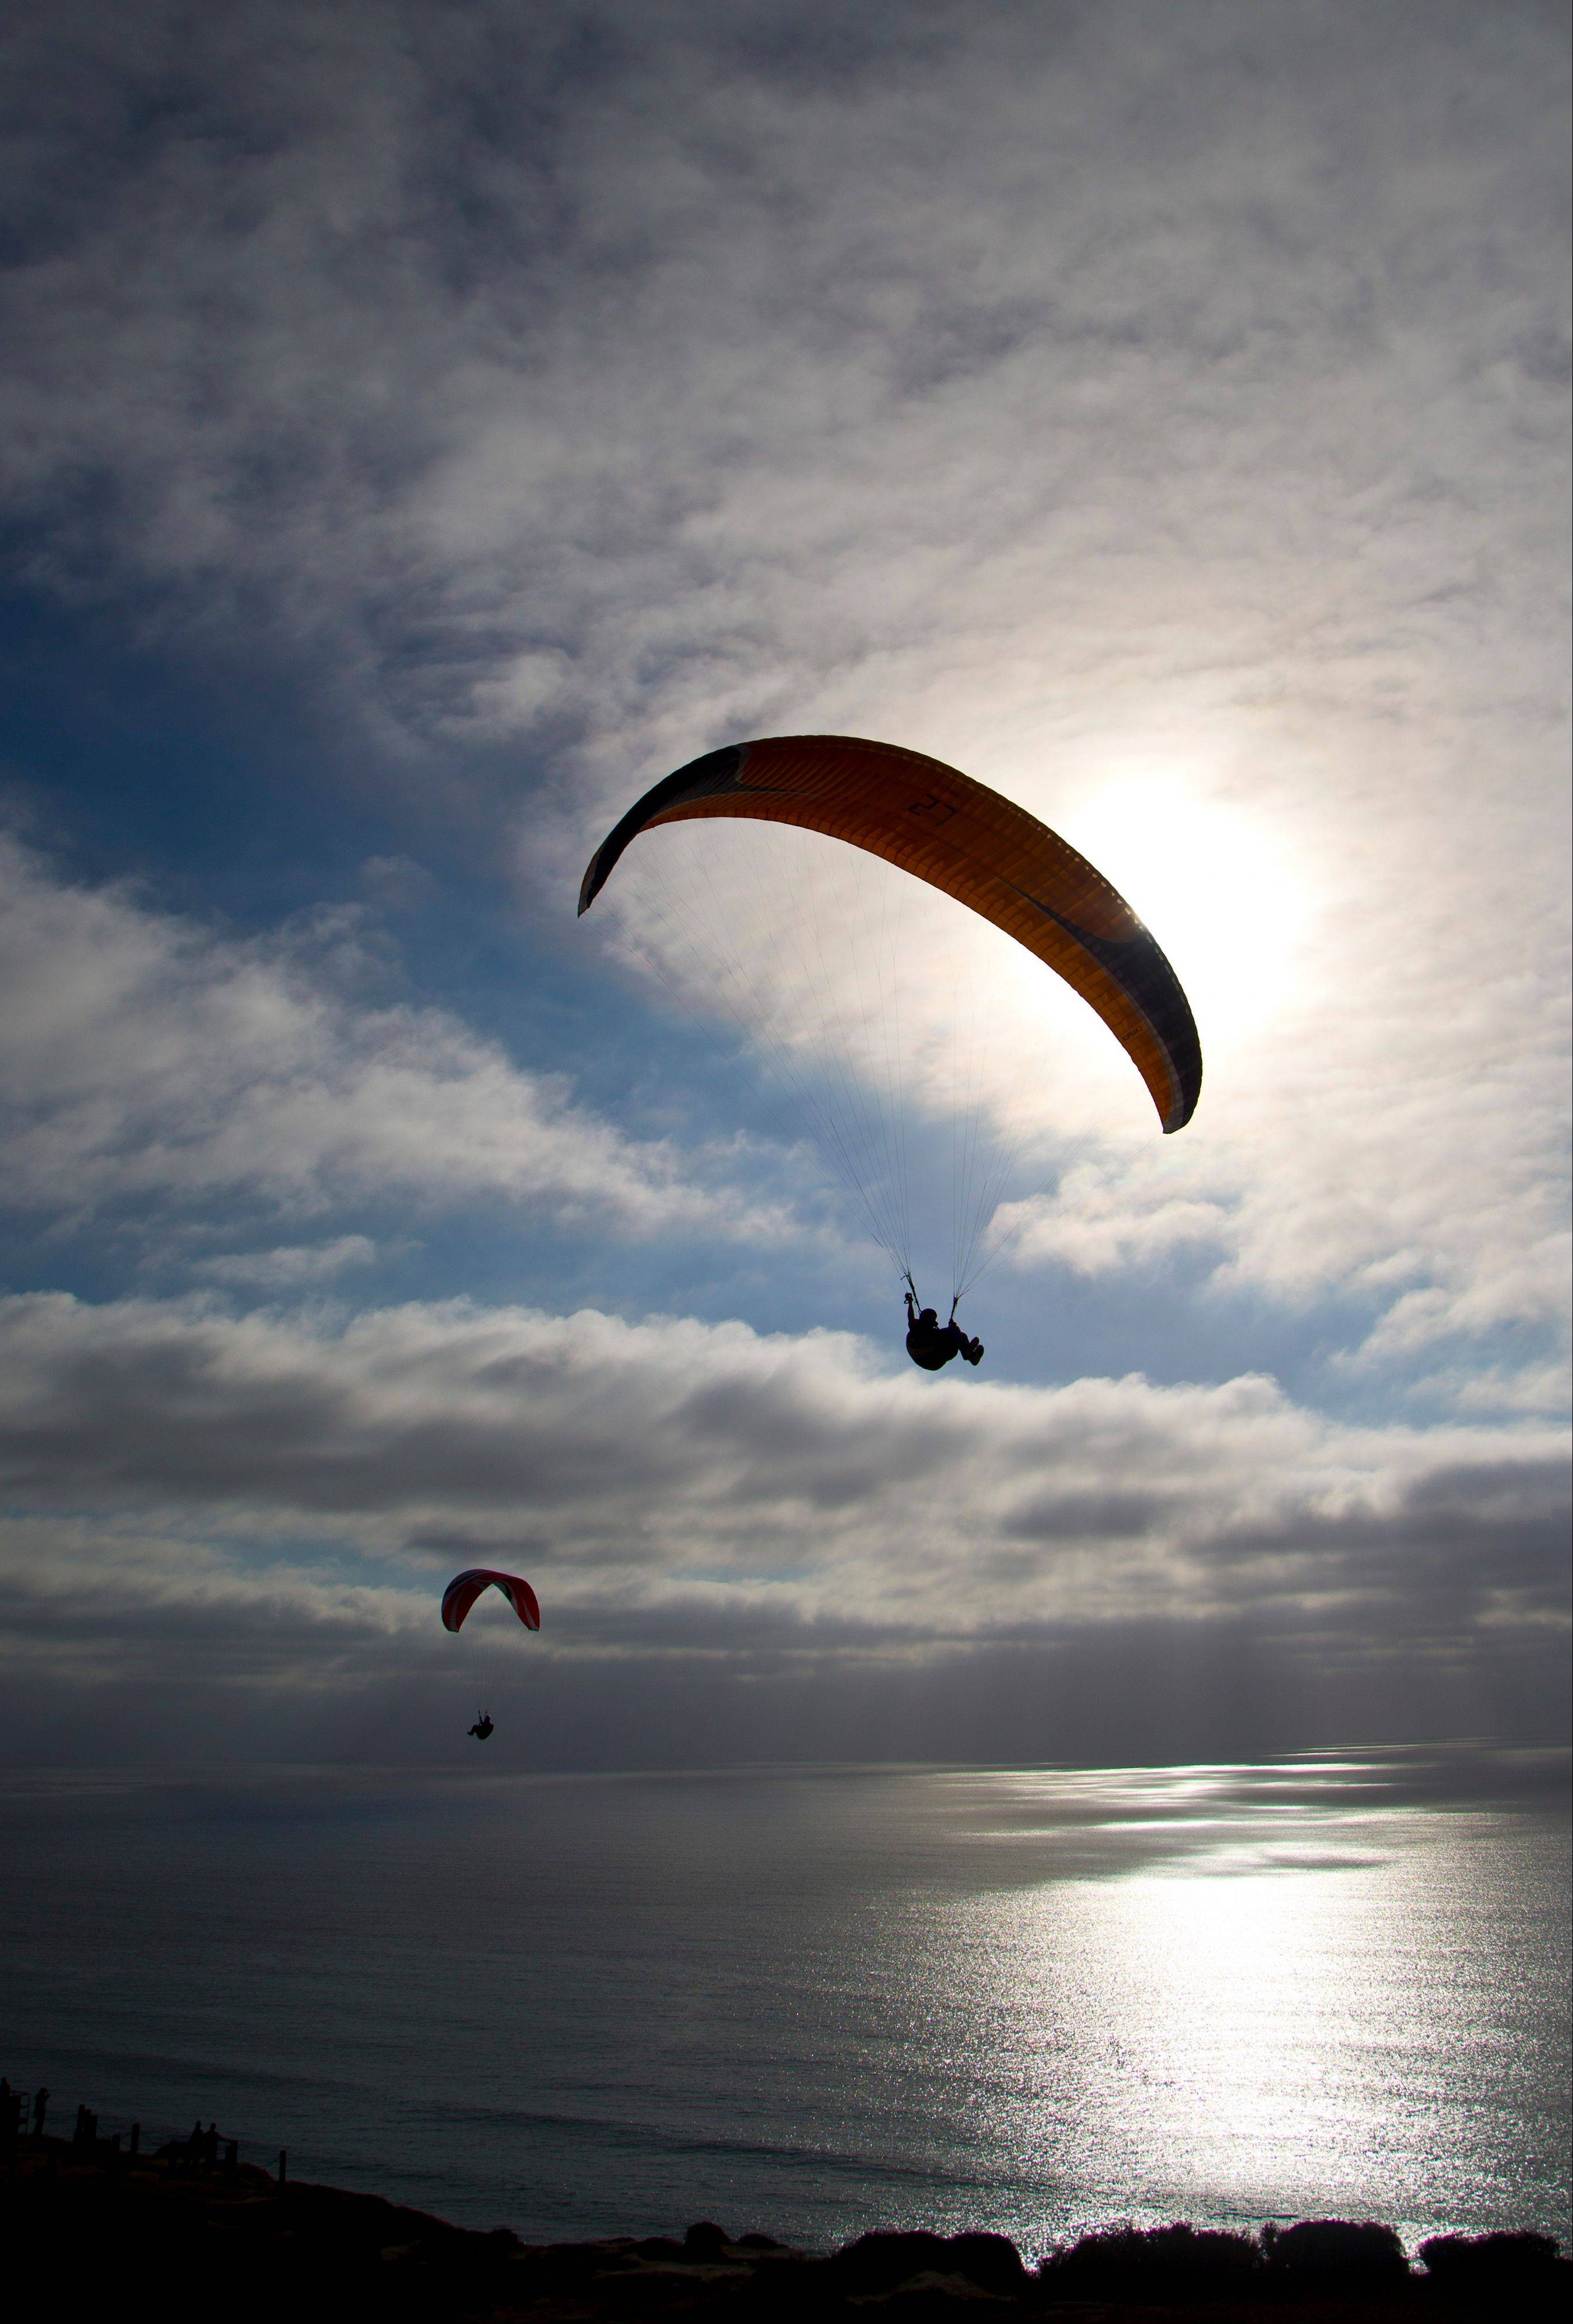 Gliders sail past the setting sun at the glider port, which is open to the public and provides breathtaking views of the Southern California coast in San Diego.